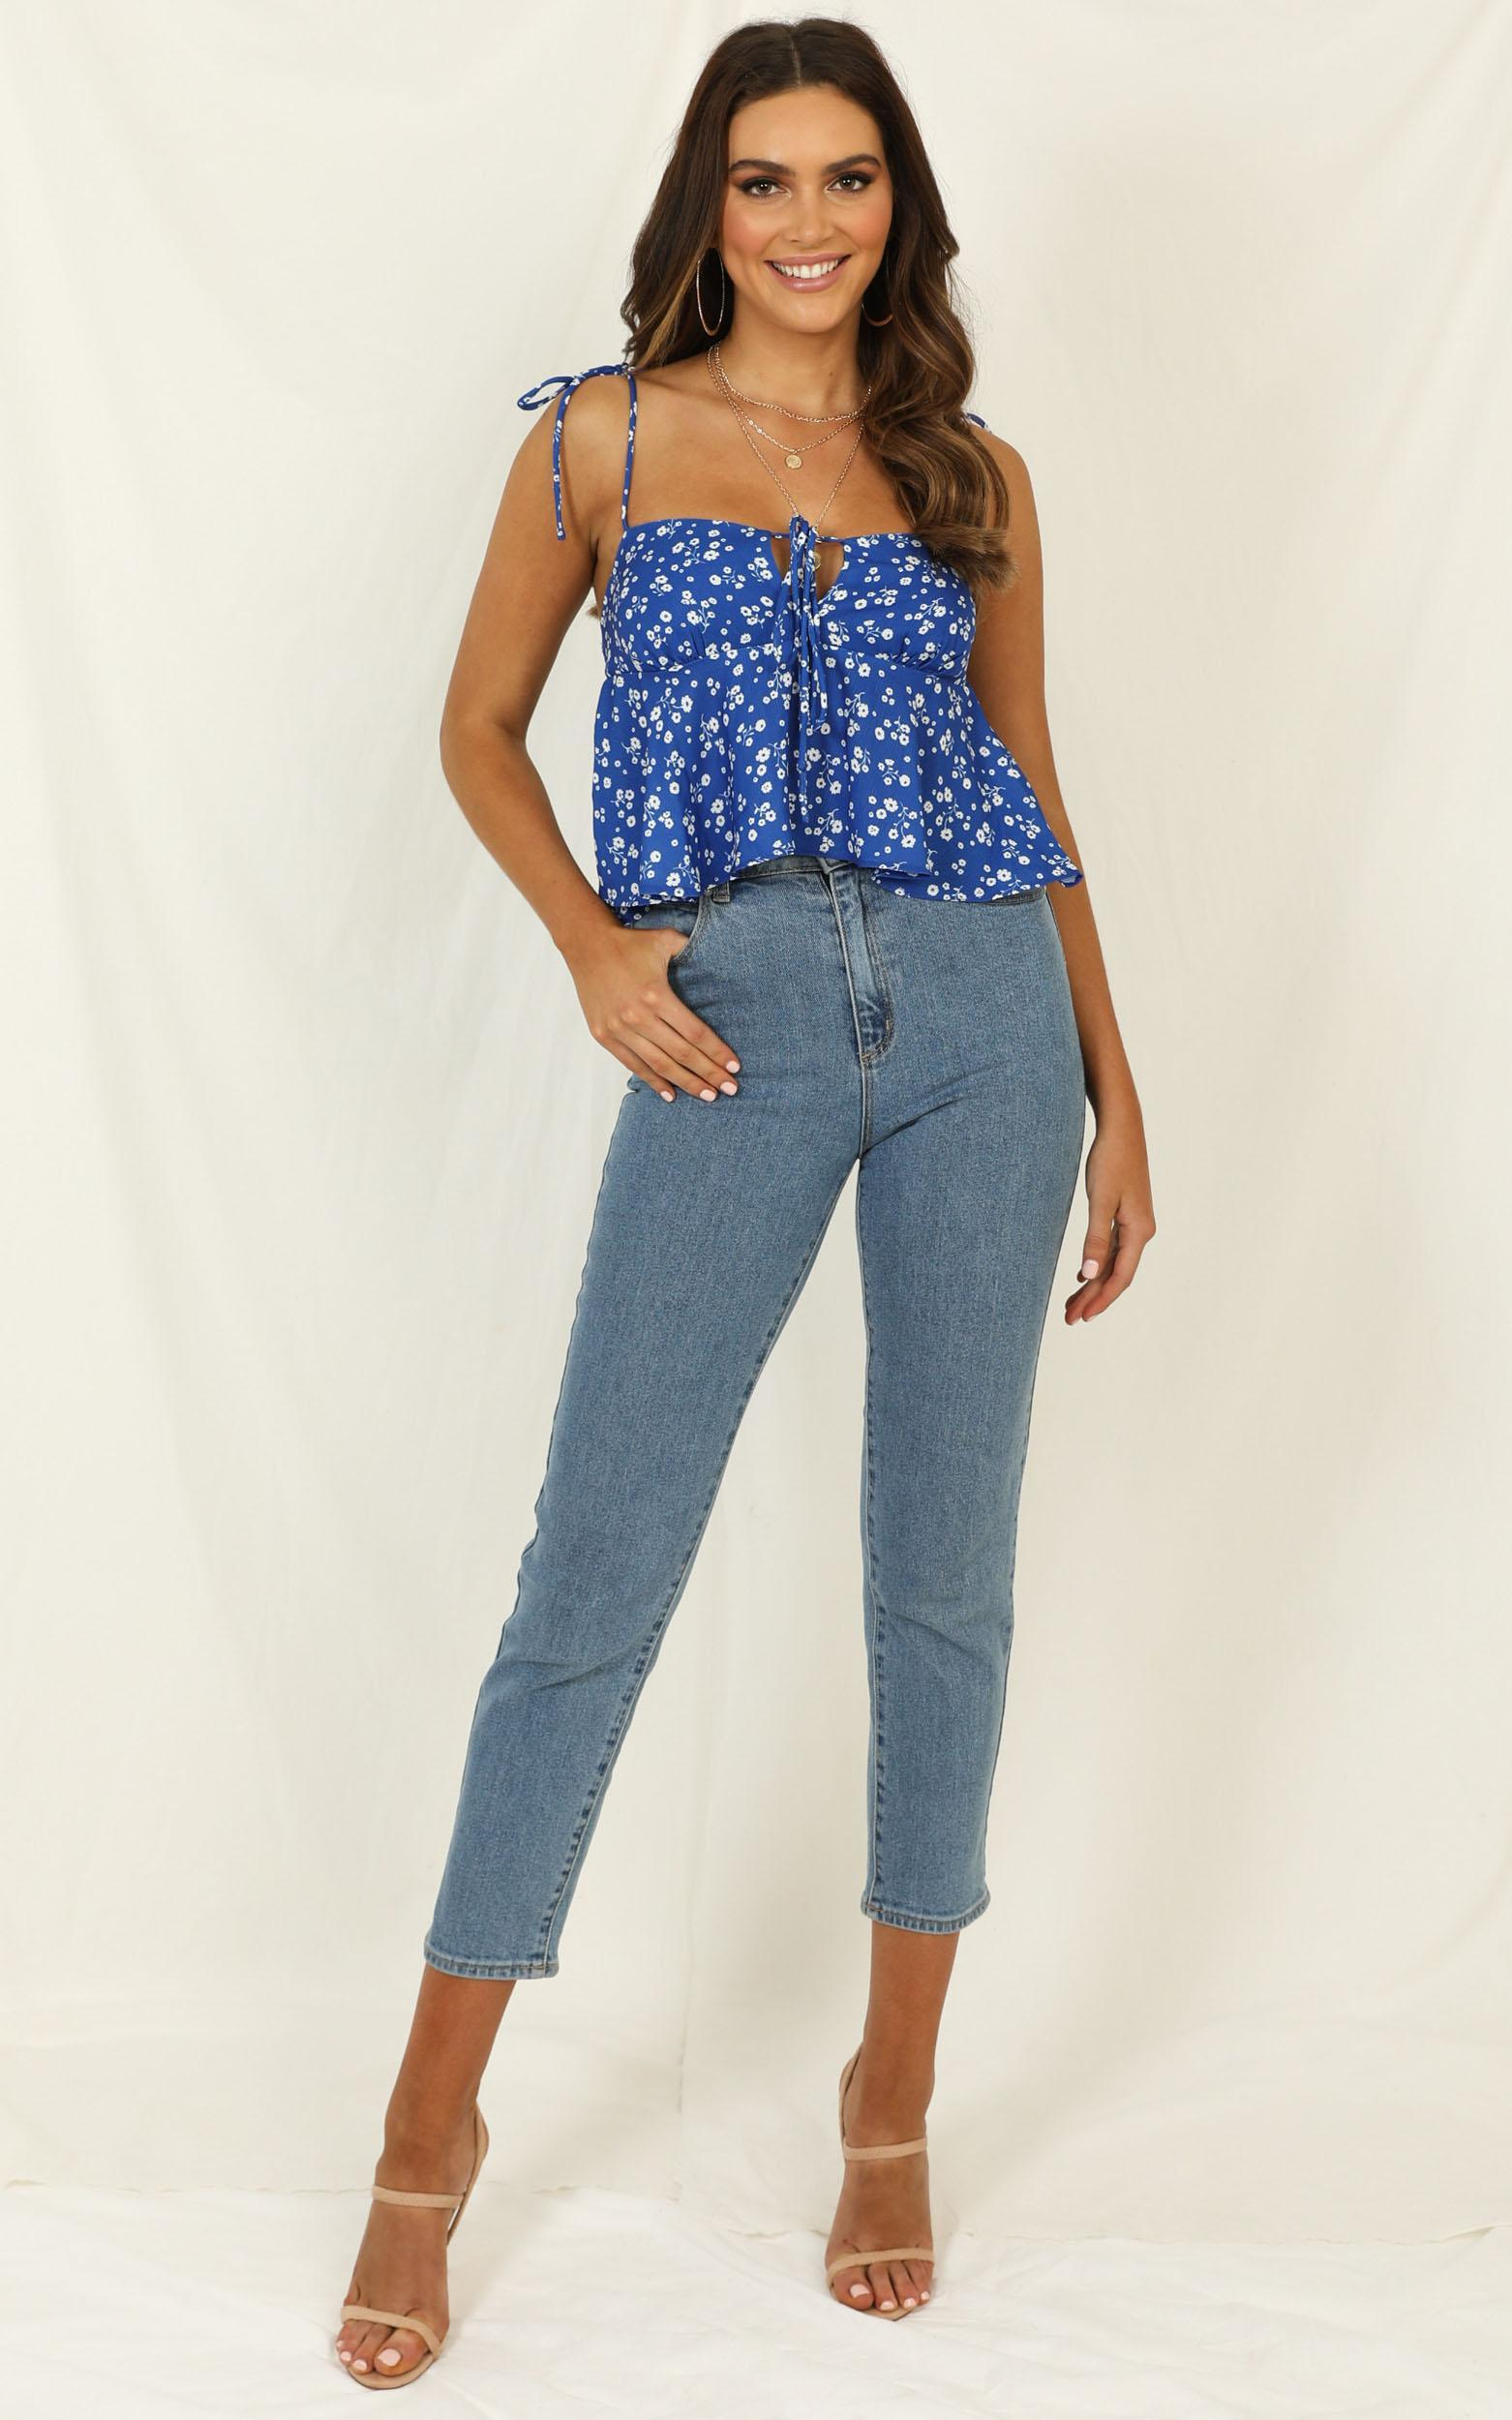 Aint No Sweetie top In blue floral - 12 (L), Blue, hi-res image number null